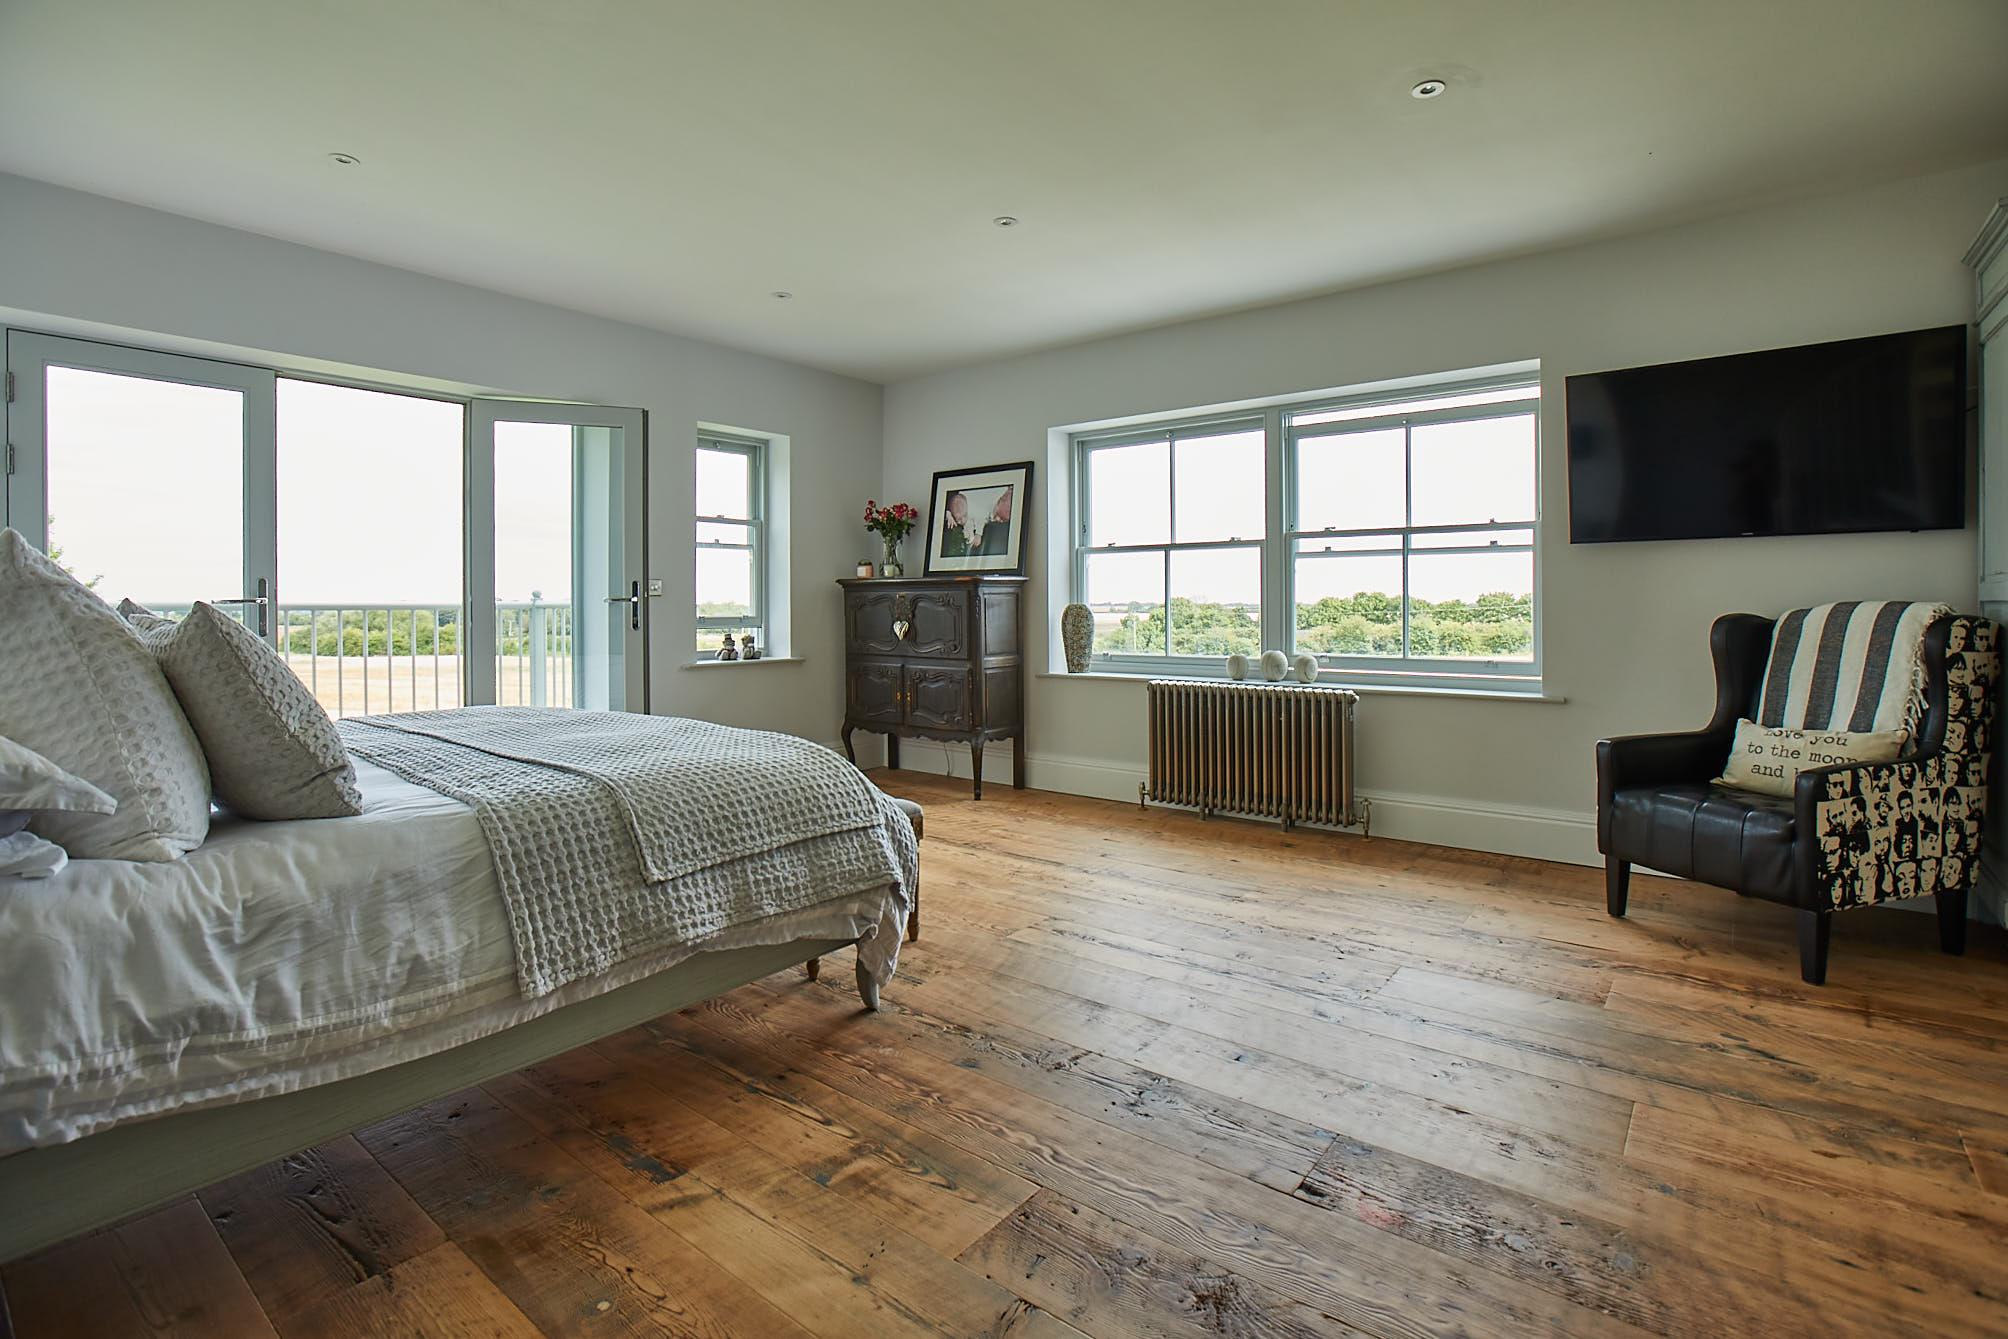 Rustic flooring in bedroom with original pieces of furniture